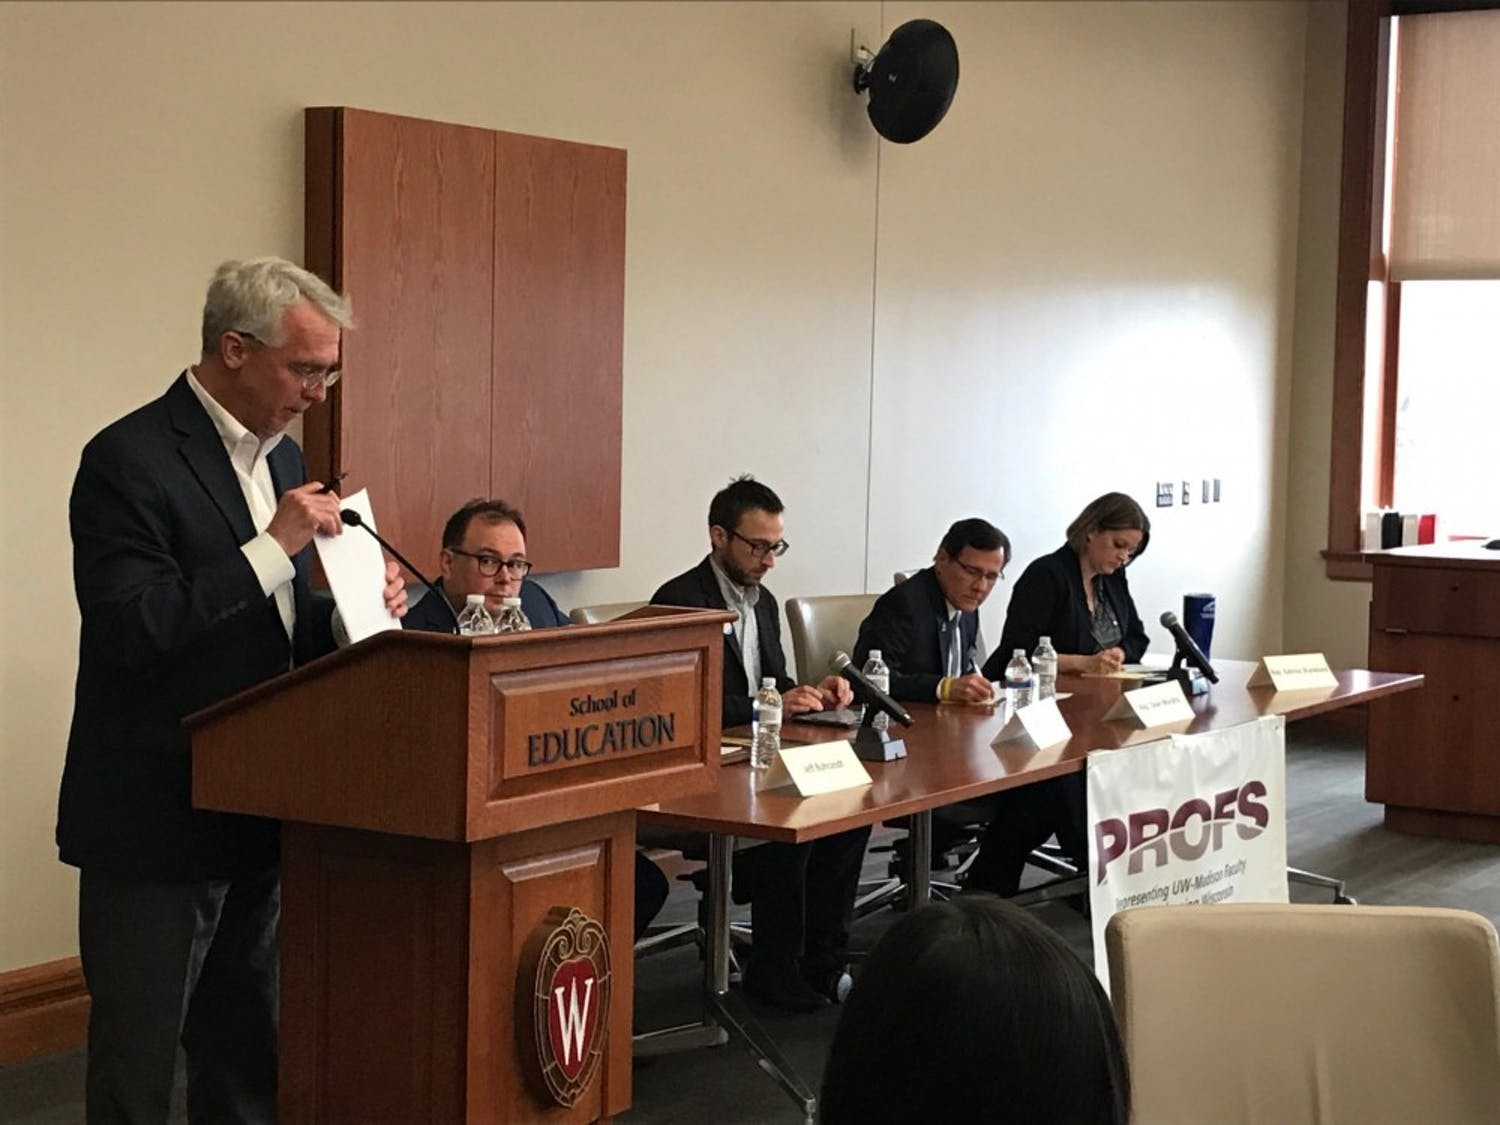 PROFS and the Wisconsin Center for the Advancement of Postsecondary Education formed a panel on the 2019-'21 state capital budget implications on higher education after a split opinion from Gov. Tony Evers and Republican-held state legislature.